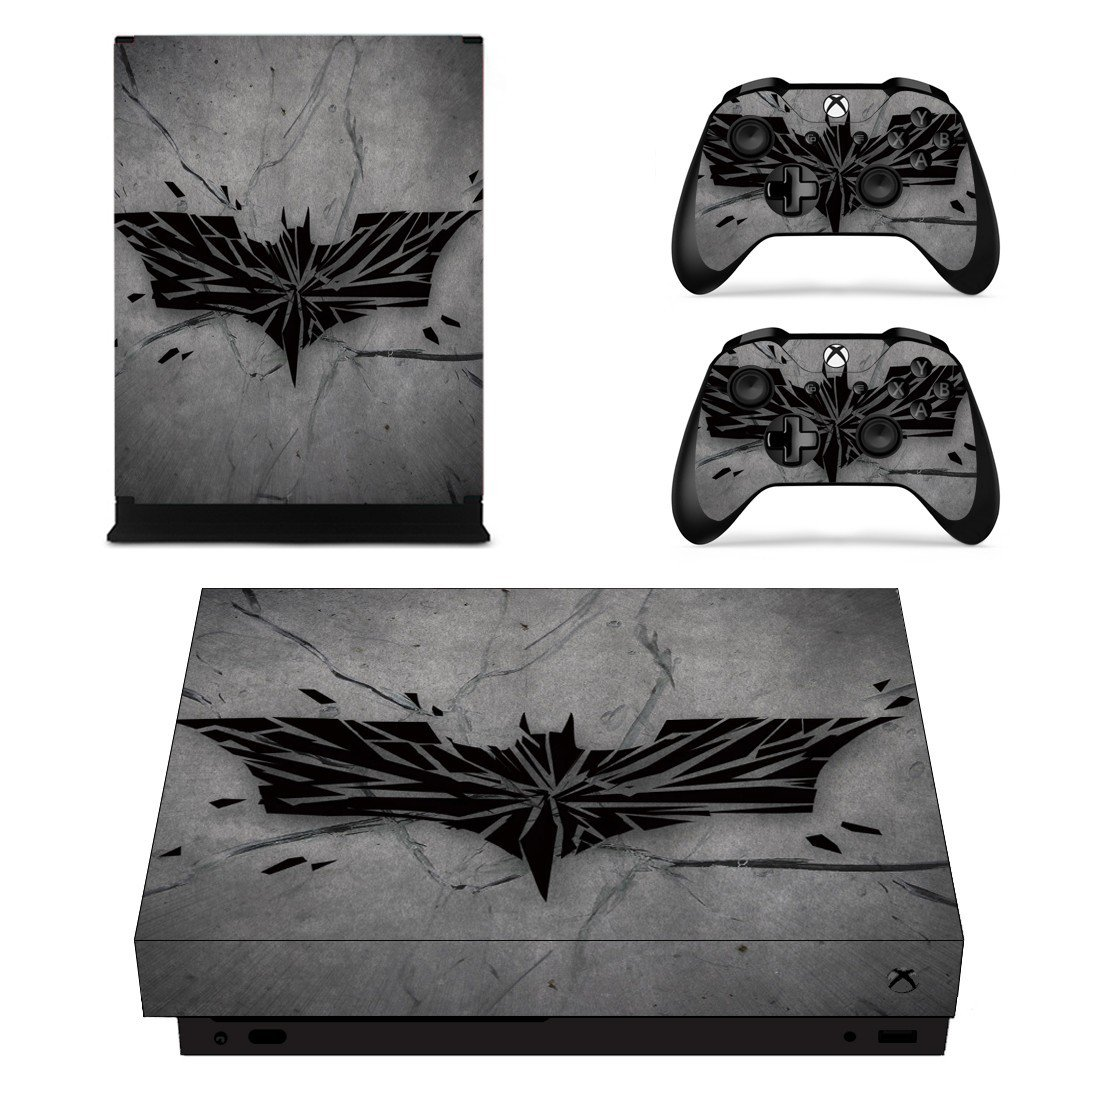 Batman decal skin sticker for Xbox One X console and controllers